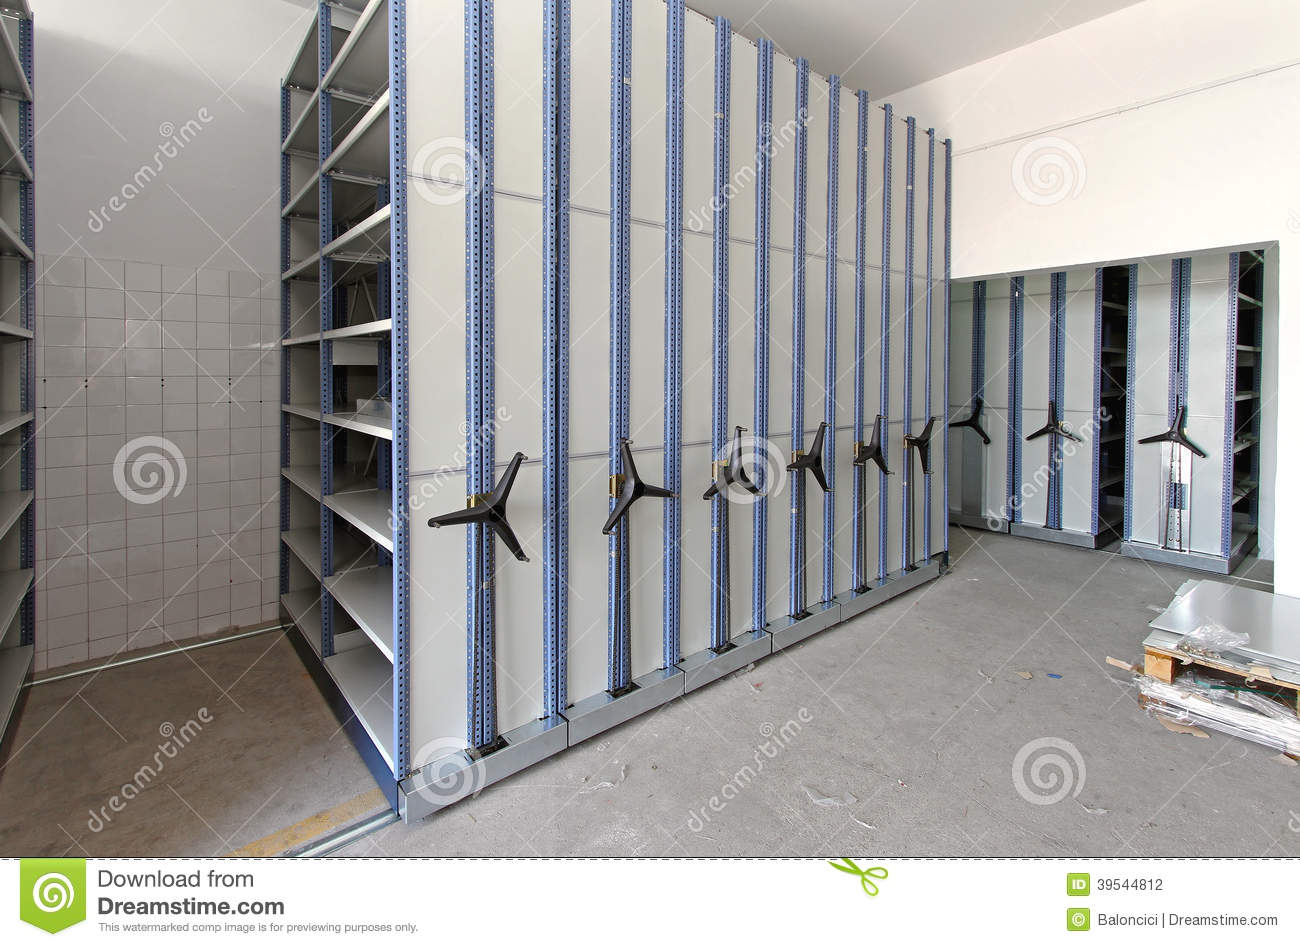 File Storage Racking Systems